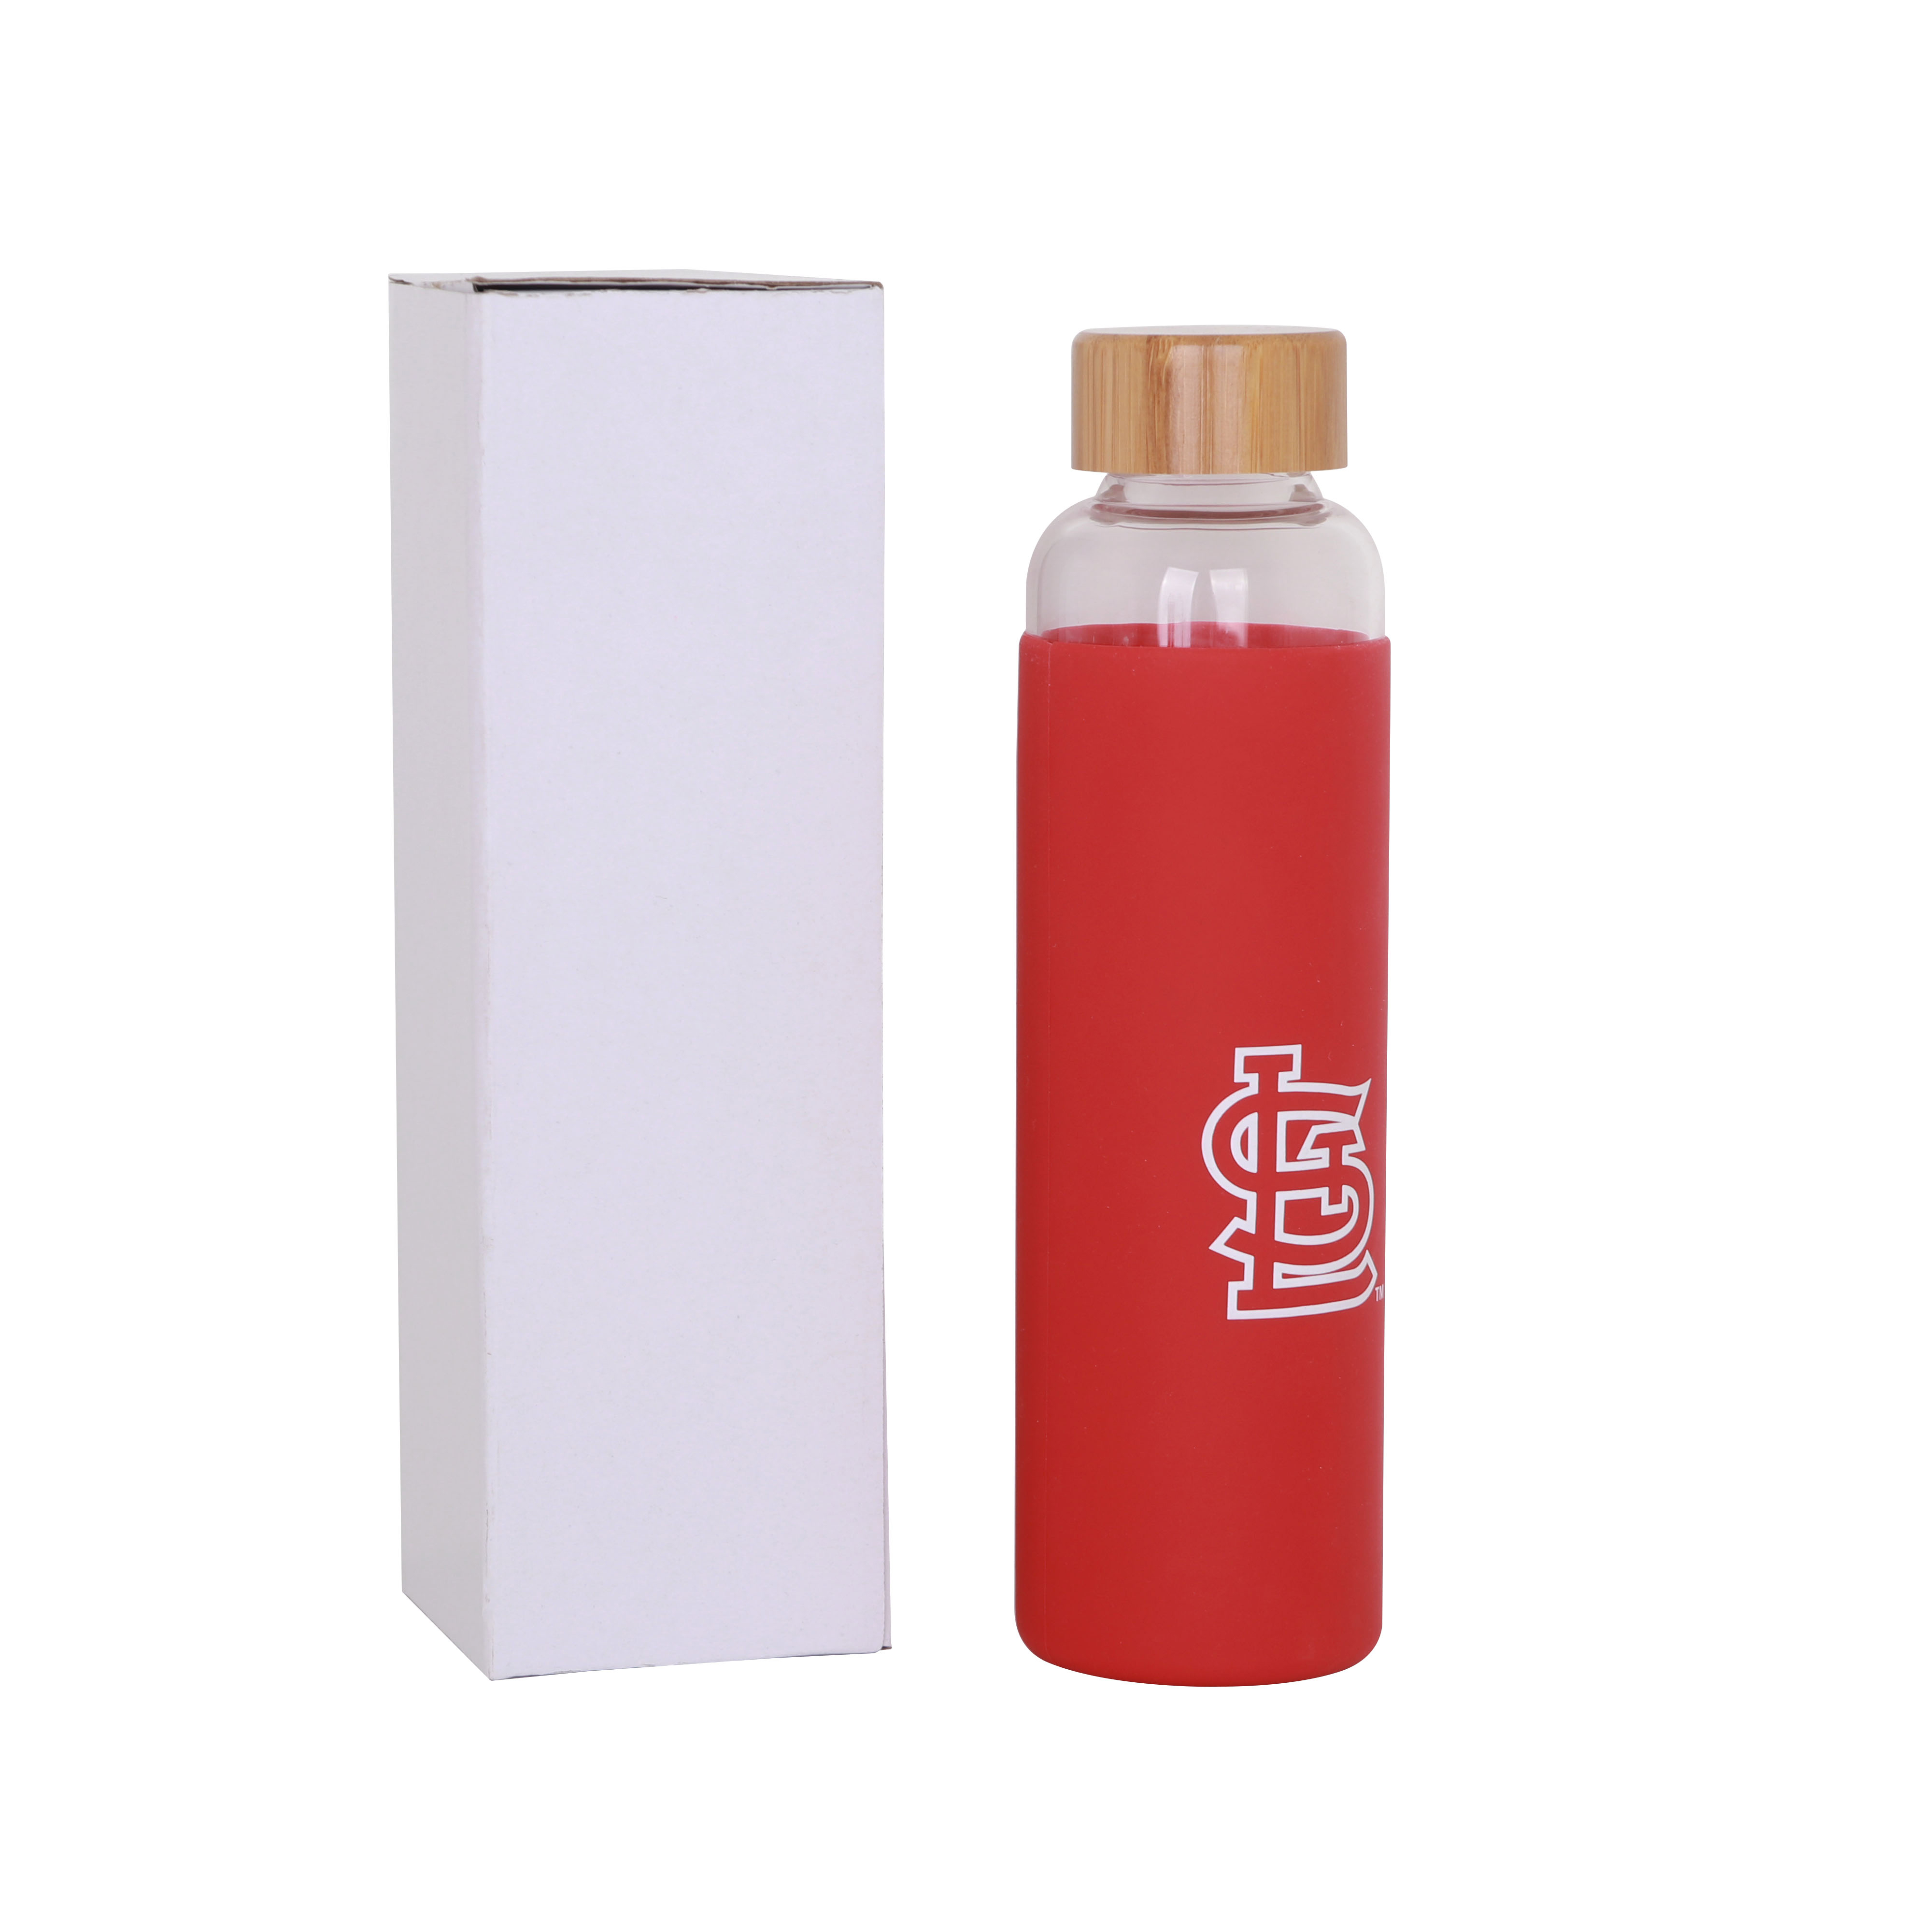 550ml Glass Drink Bottle with Bamboo Lid - PCD056 Image